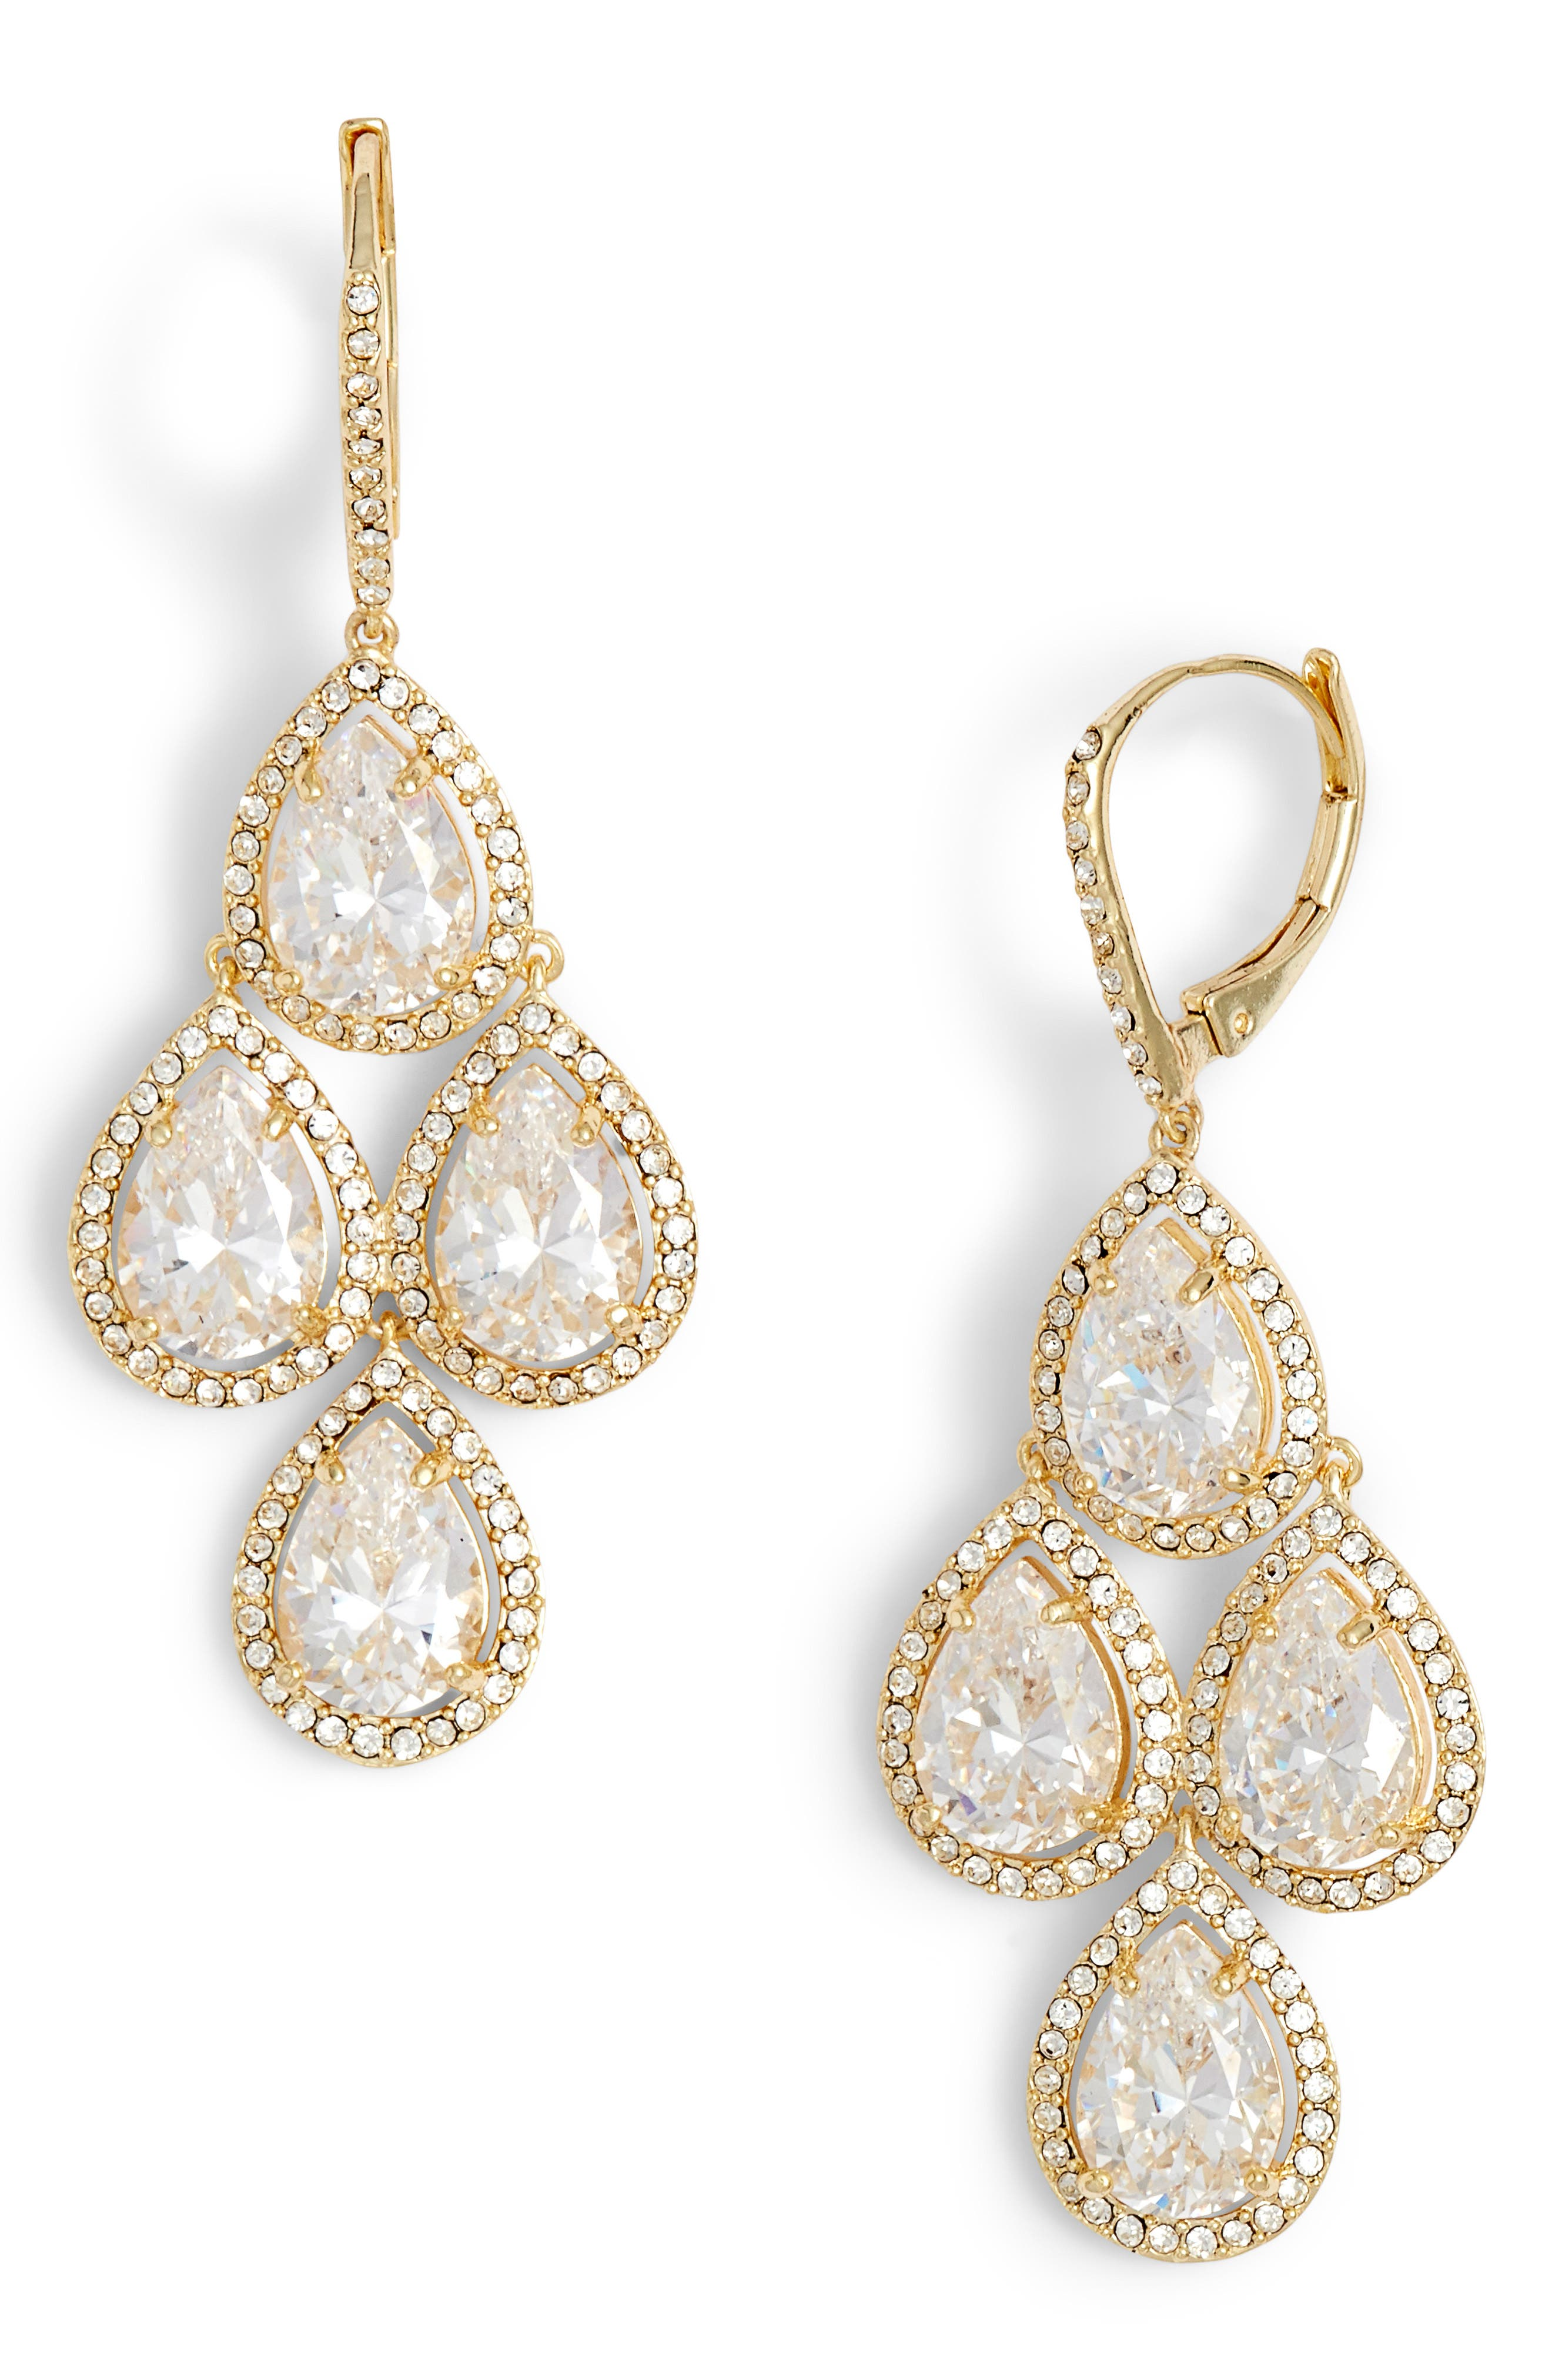 Crystal Chandelier Earrings,                             Main thumbnail 1, color,                             CLEAR- GOLD